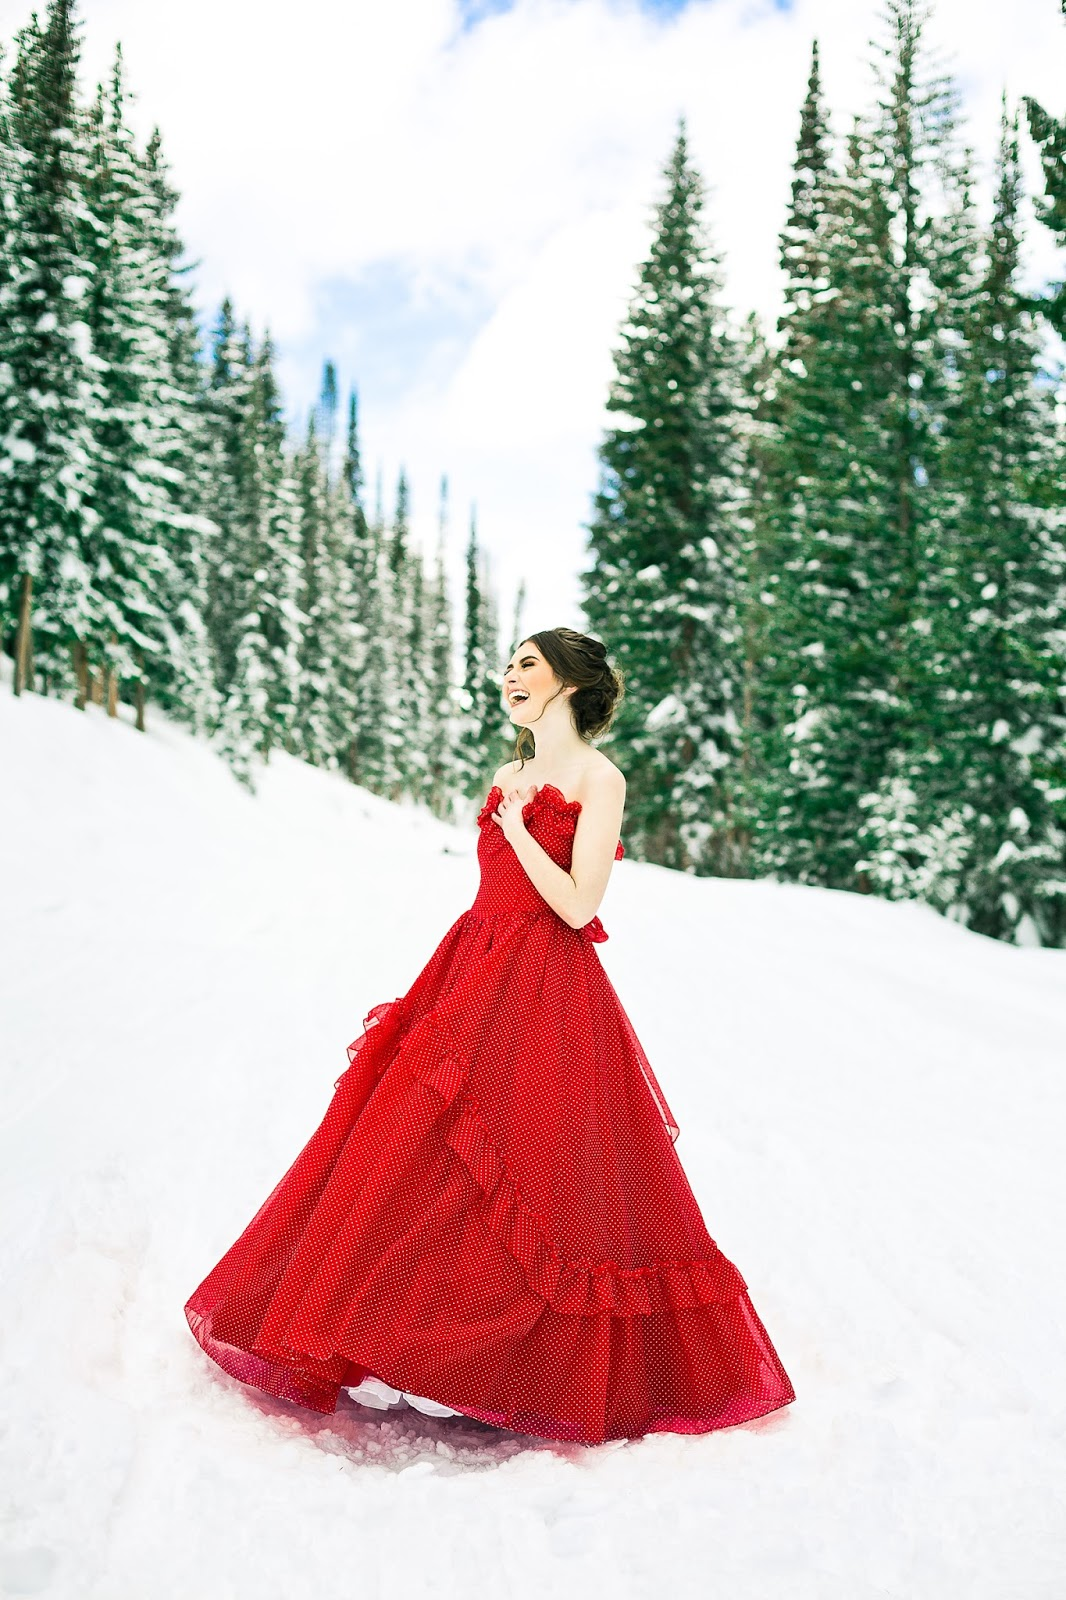 winter_red_dress_pictures_012.jpg